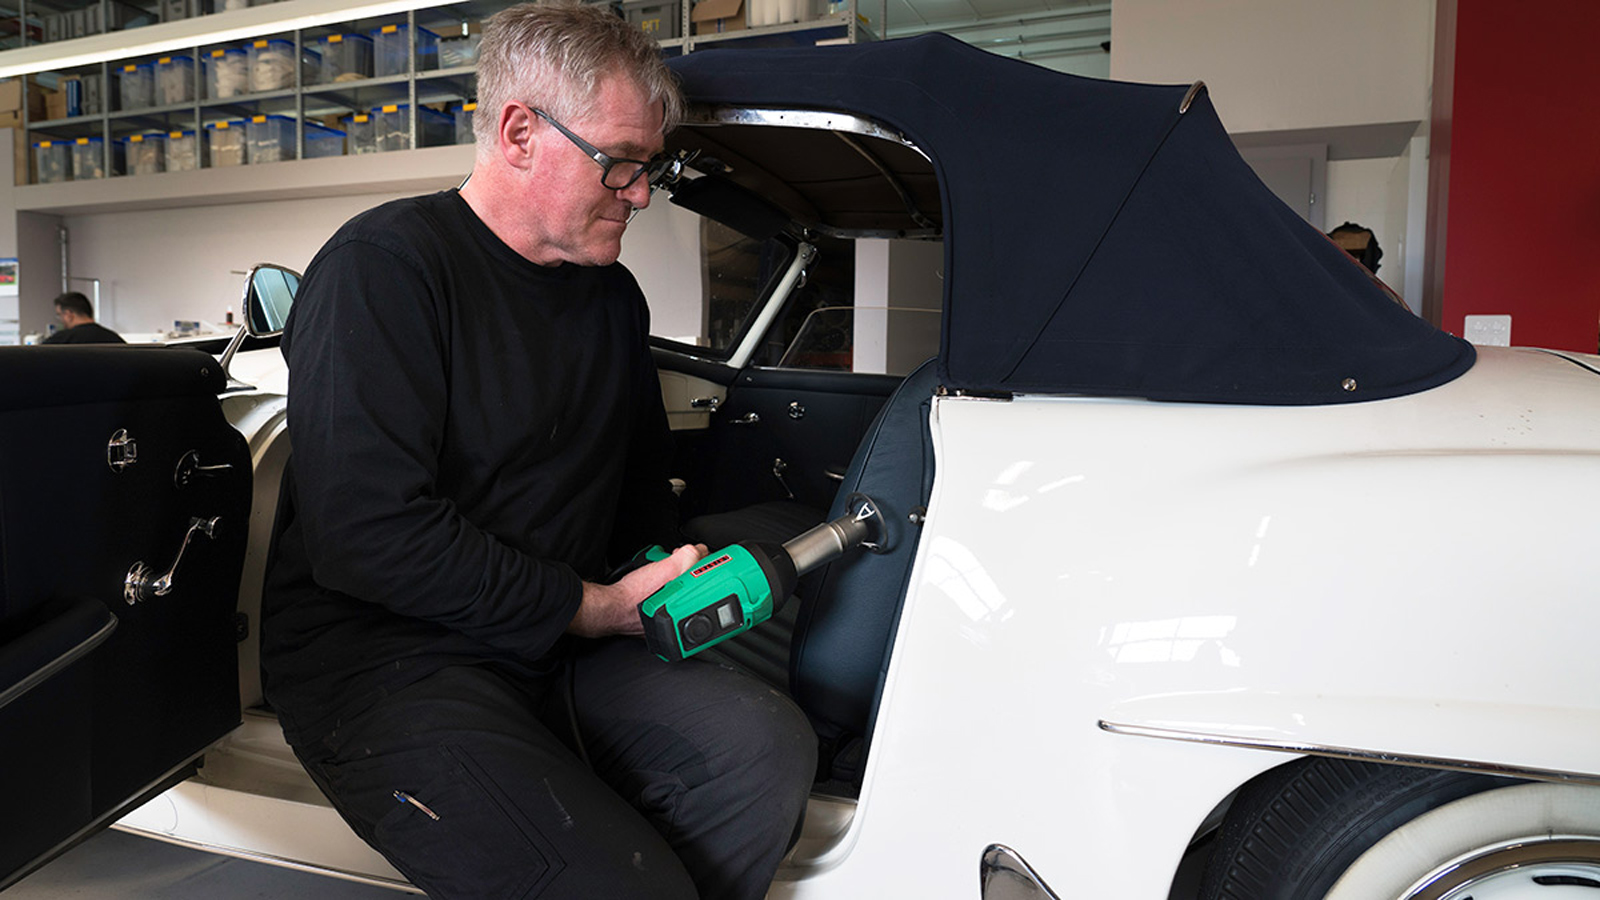 Leo Schuler smoothing a leather seat with a GHIBLI heat gun and protection nozzle